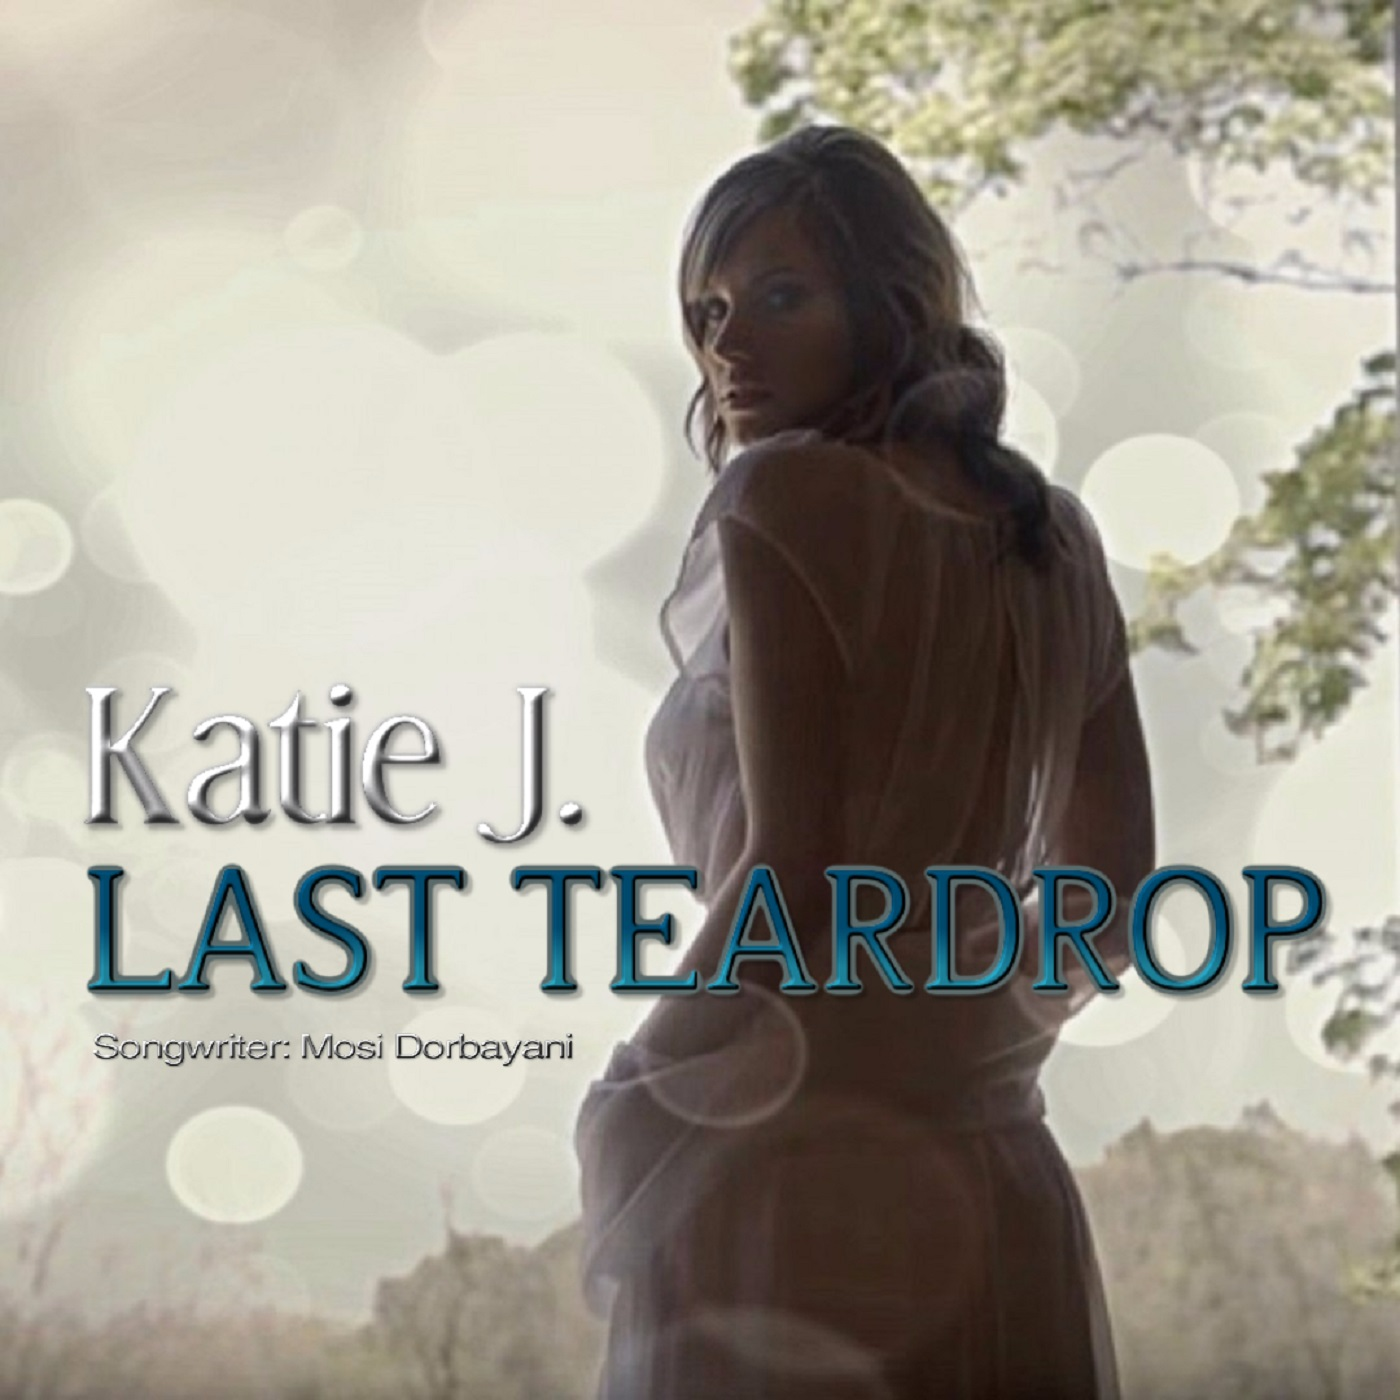 Last teardrop cover image